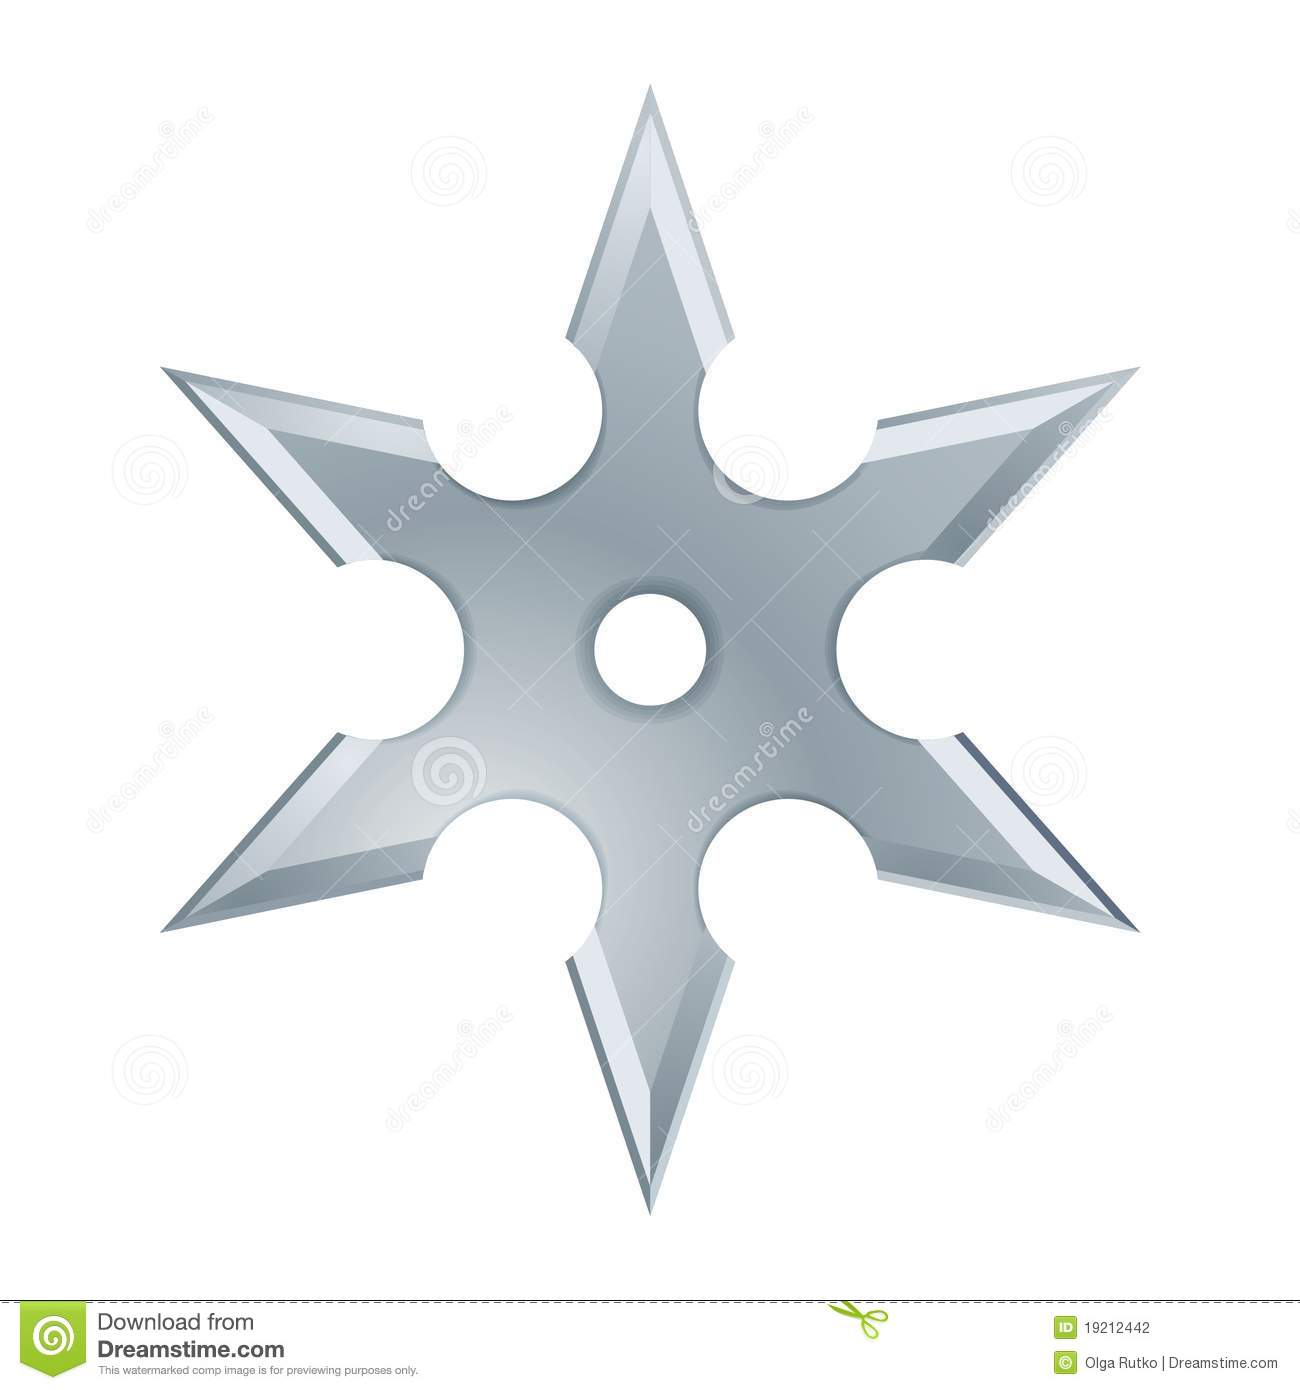 Shuriken clipart #9, Download drawings